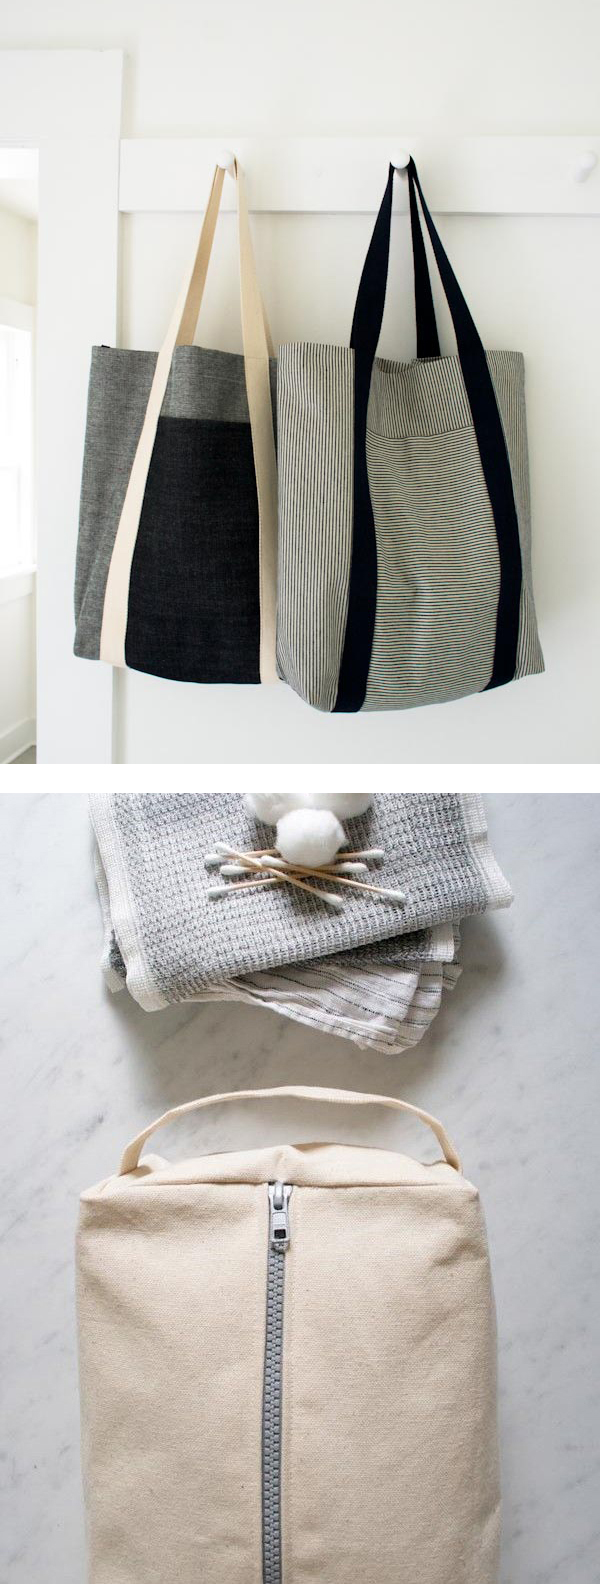 10 DIY Holiday Gift Ideas - Blog - Cotton & Flax